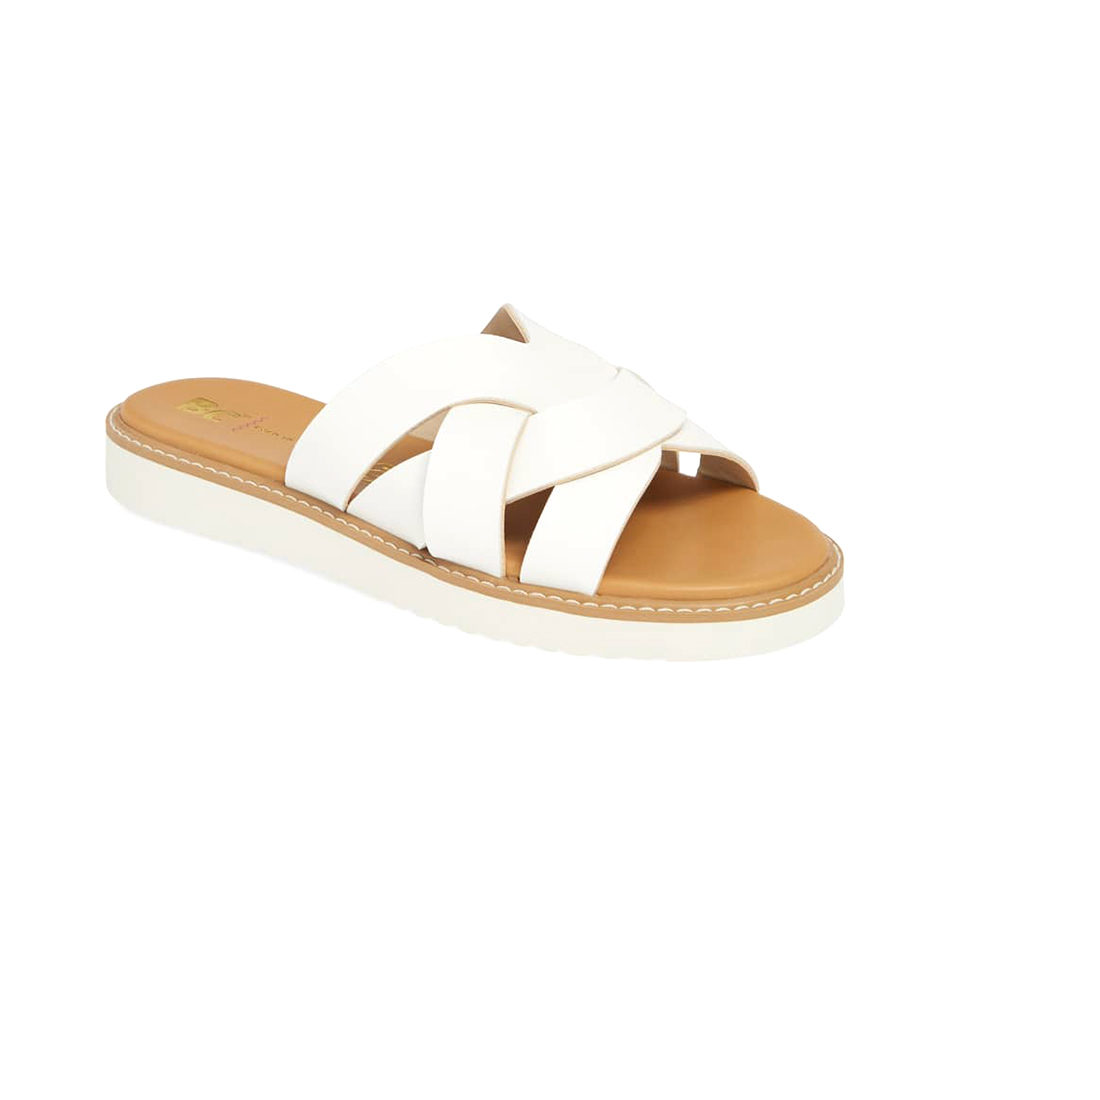 af872e01e Slides   Mules • Page 2 of 6 • Cotton Island Women s Clothing ...